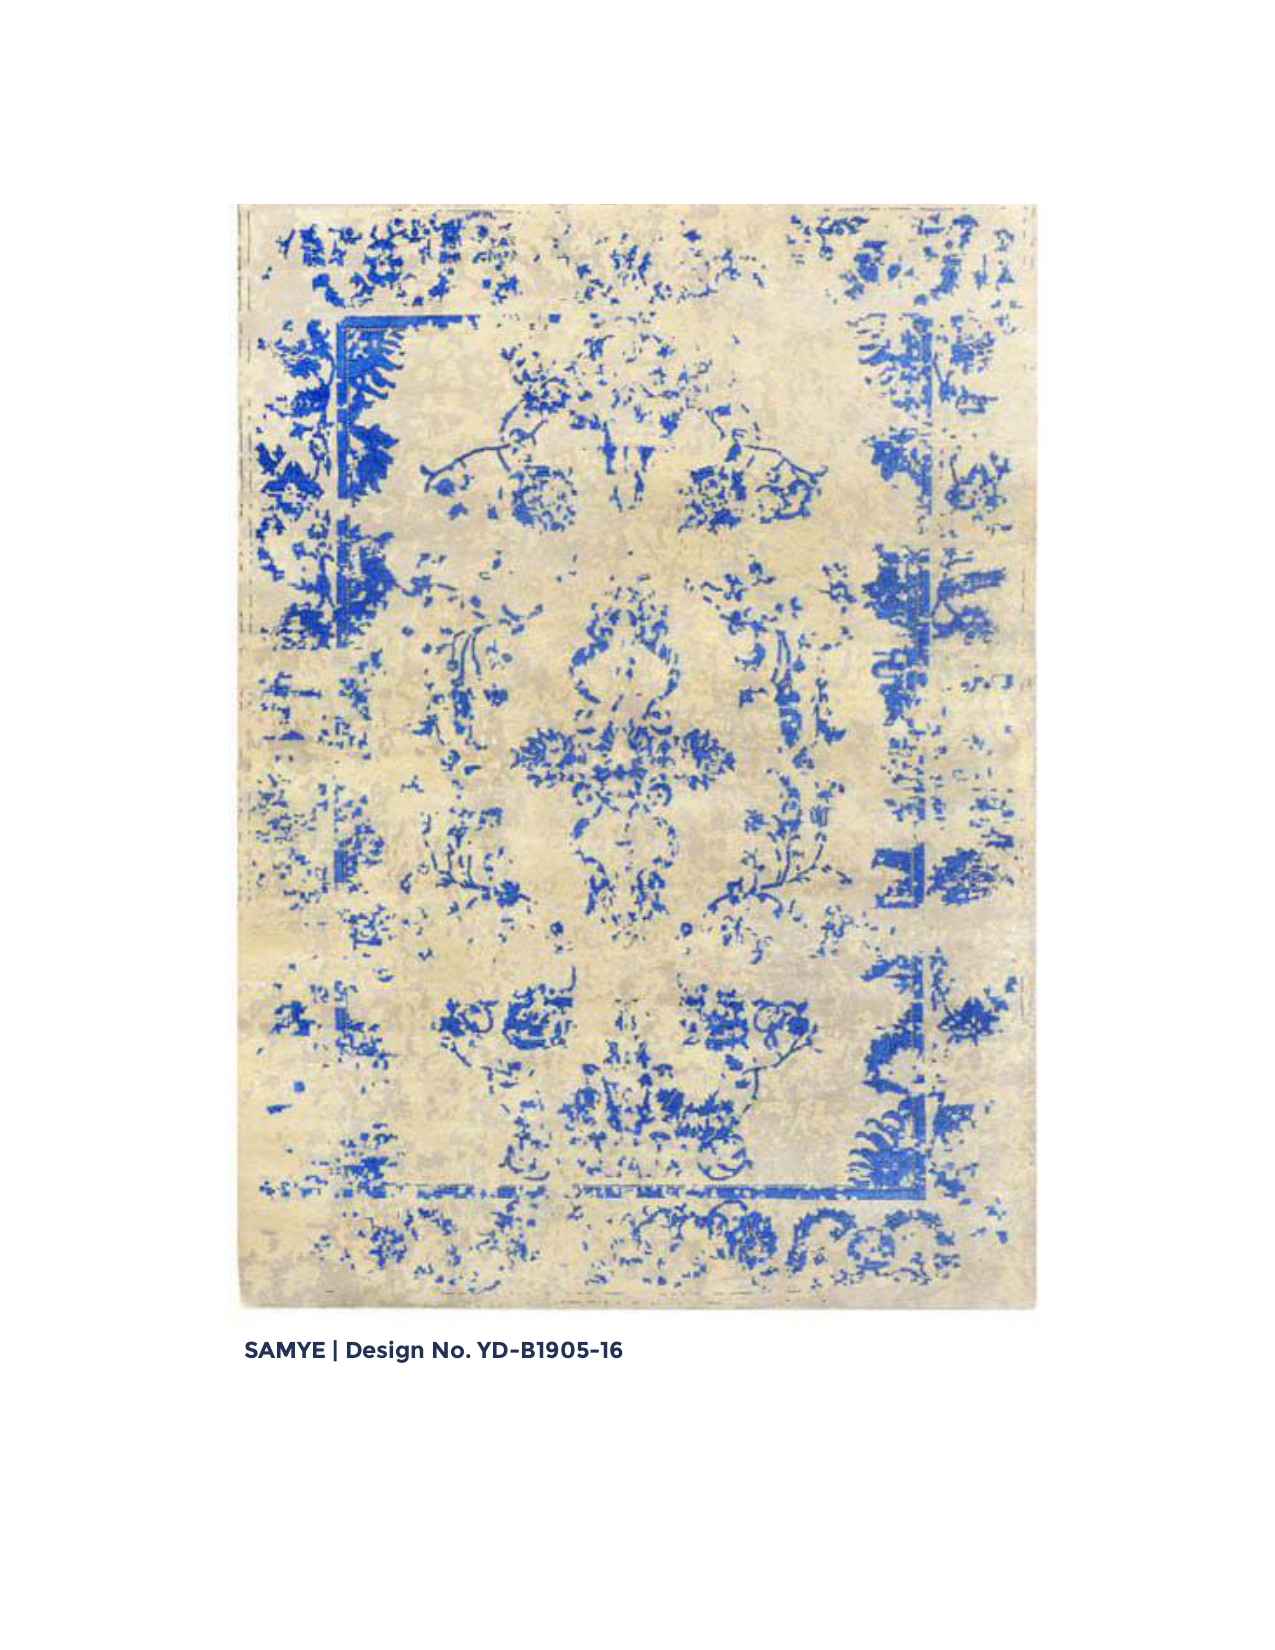 Hand_Knotted_CC_1905_21.jpg